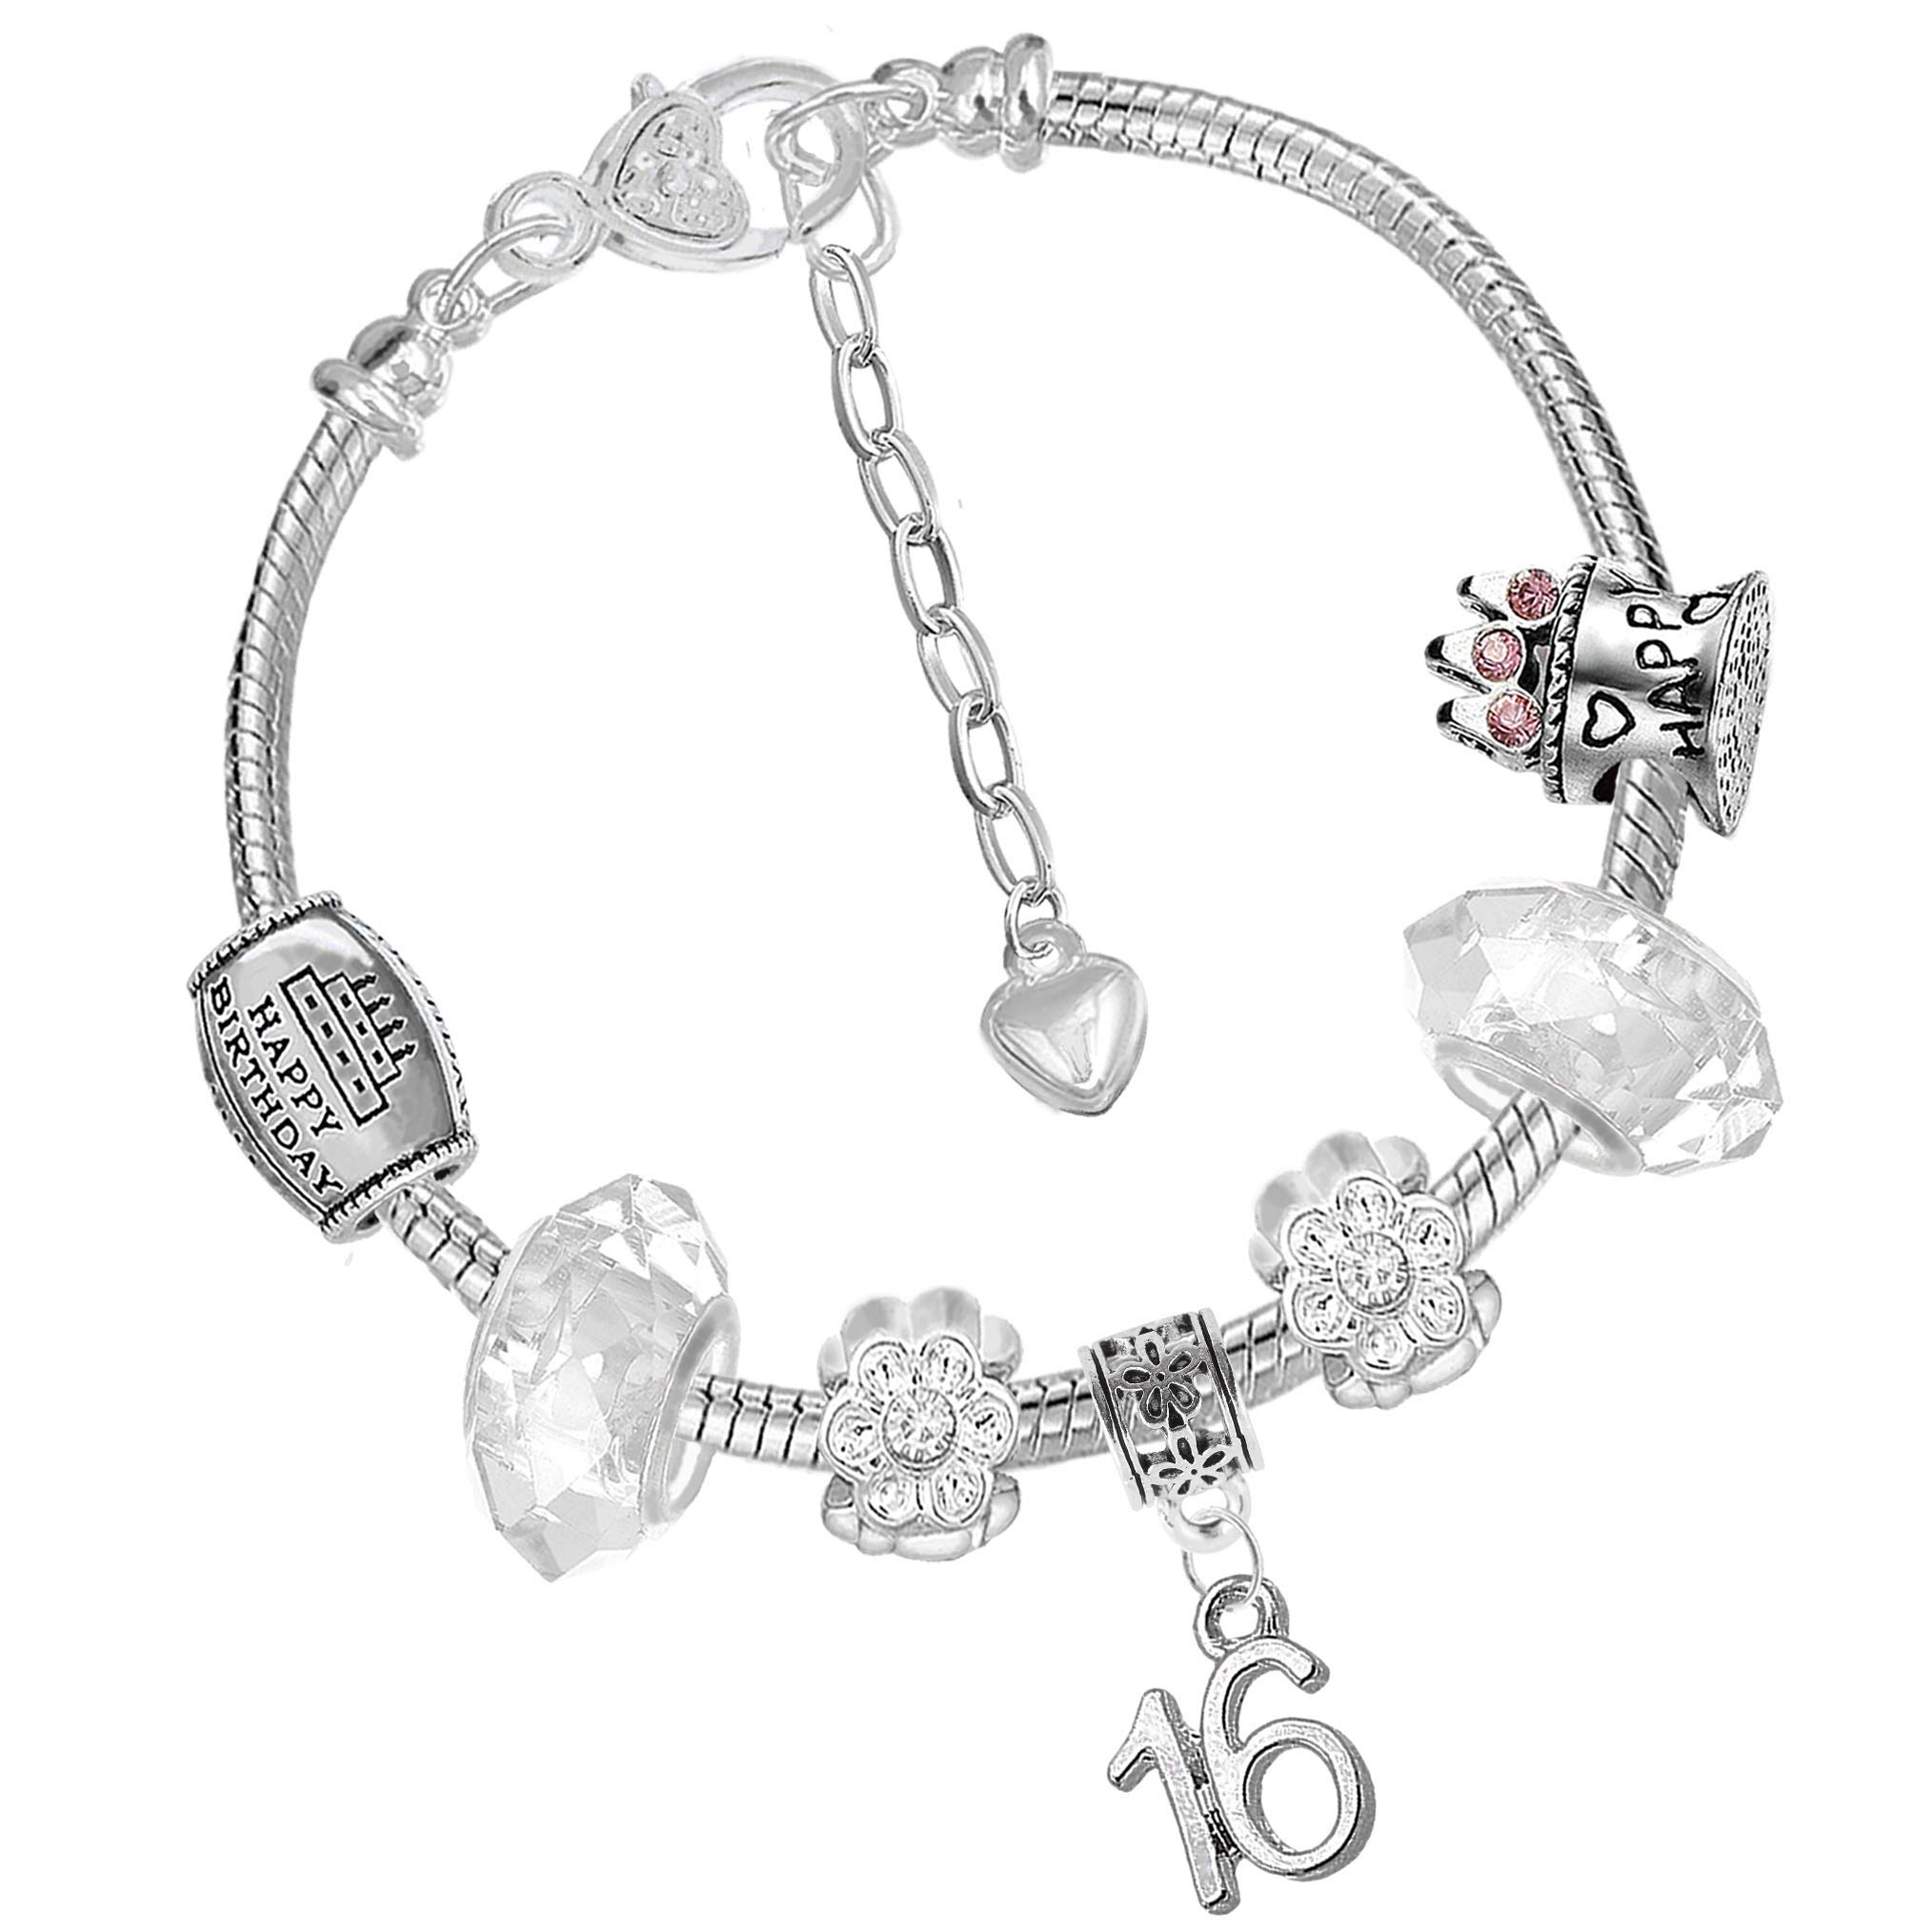 Crystal Birthday Charm Bracelet with Silver Gift Box for Women Girls Age 16th 18th 21st 30th 40th 50th 60th 70th 80th